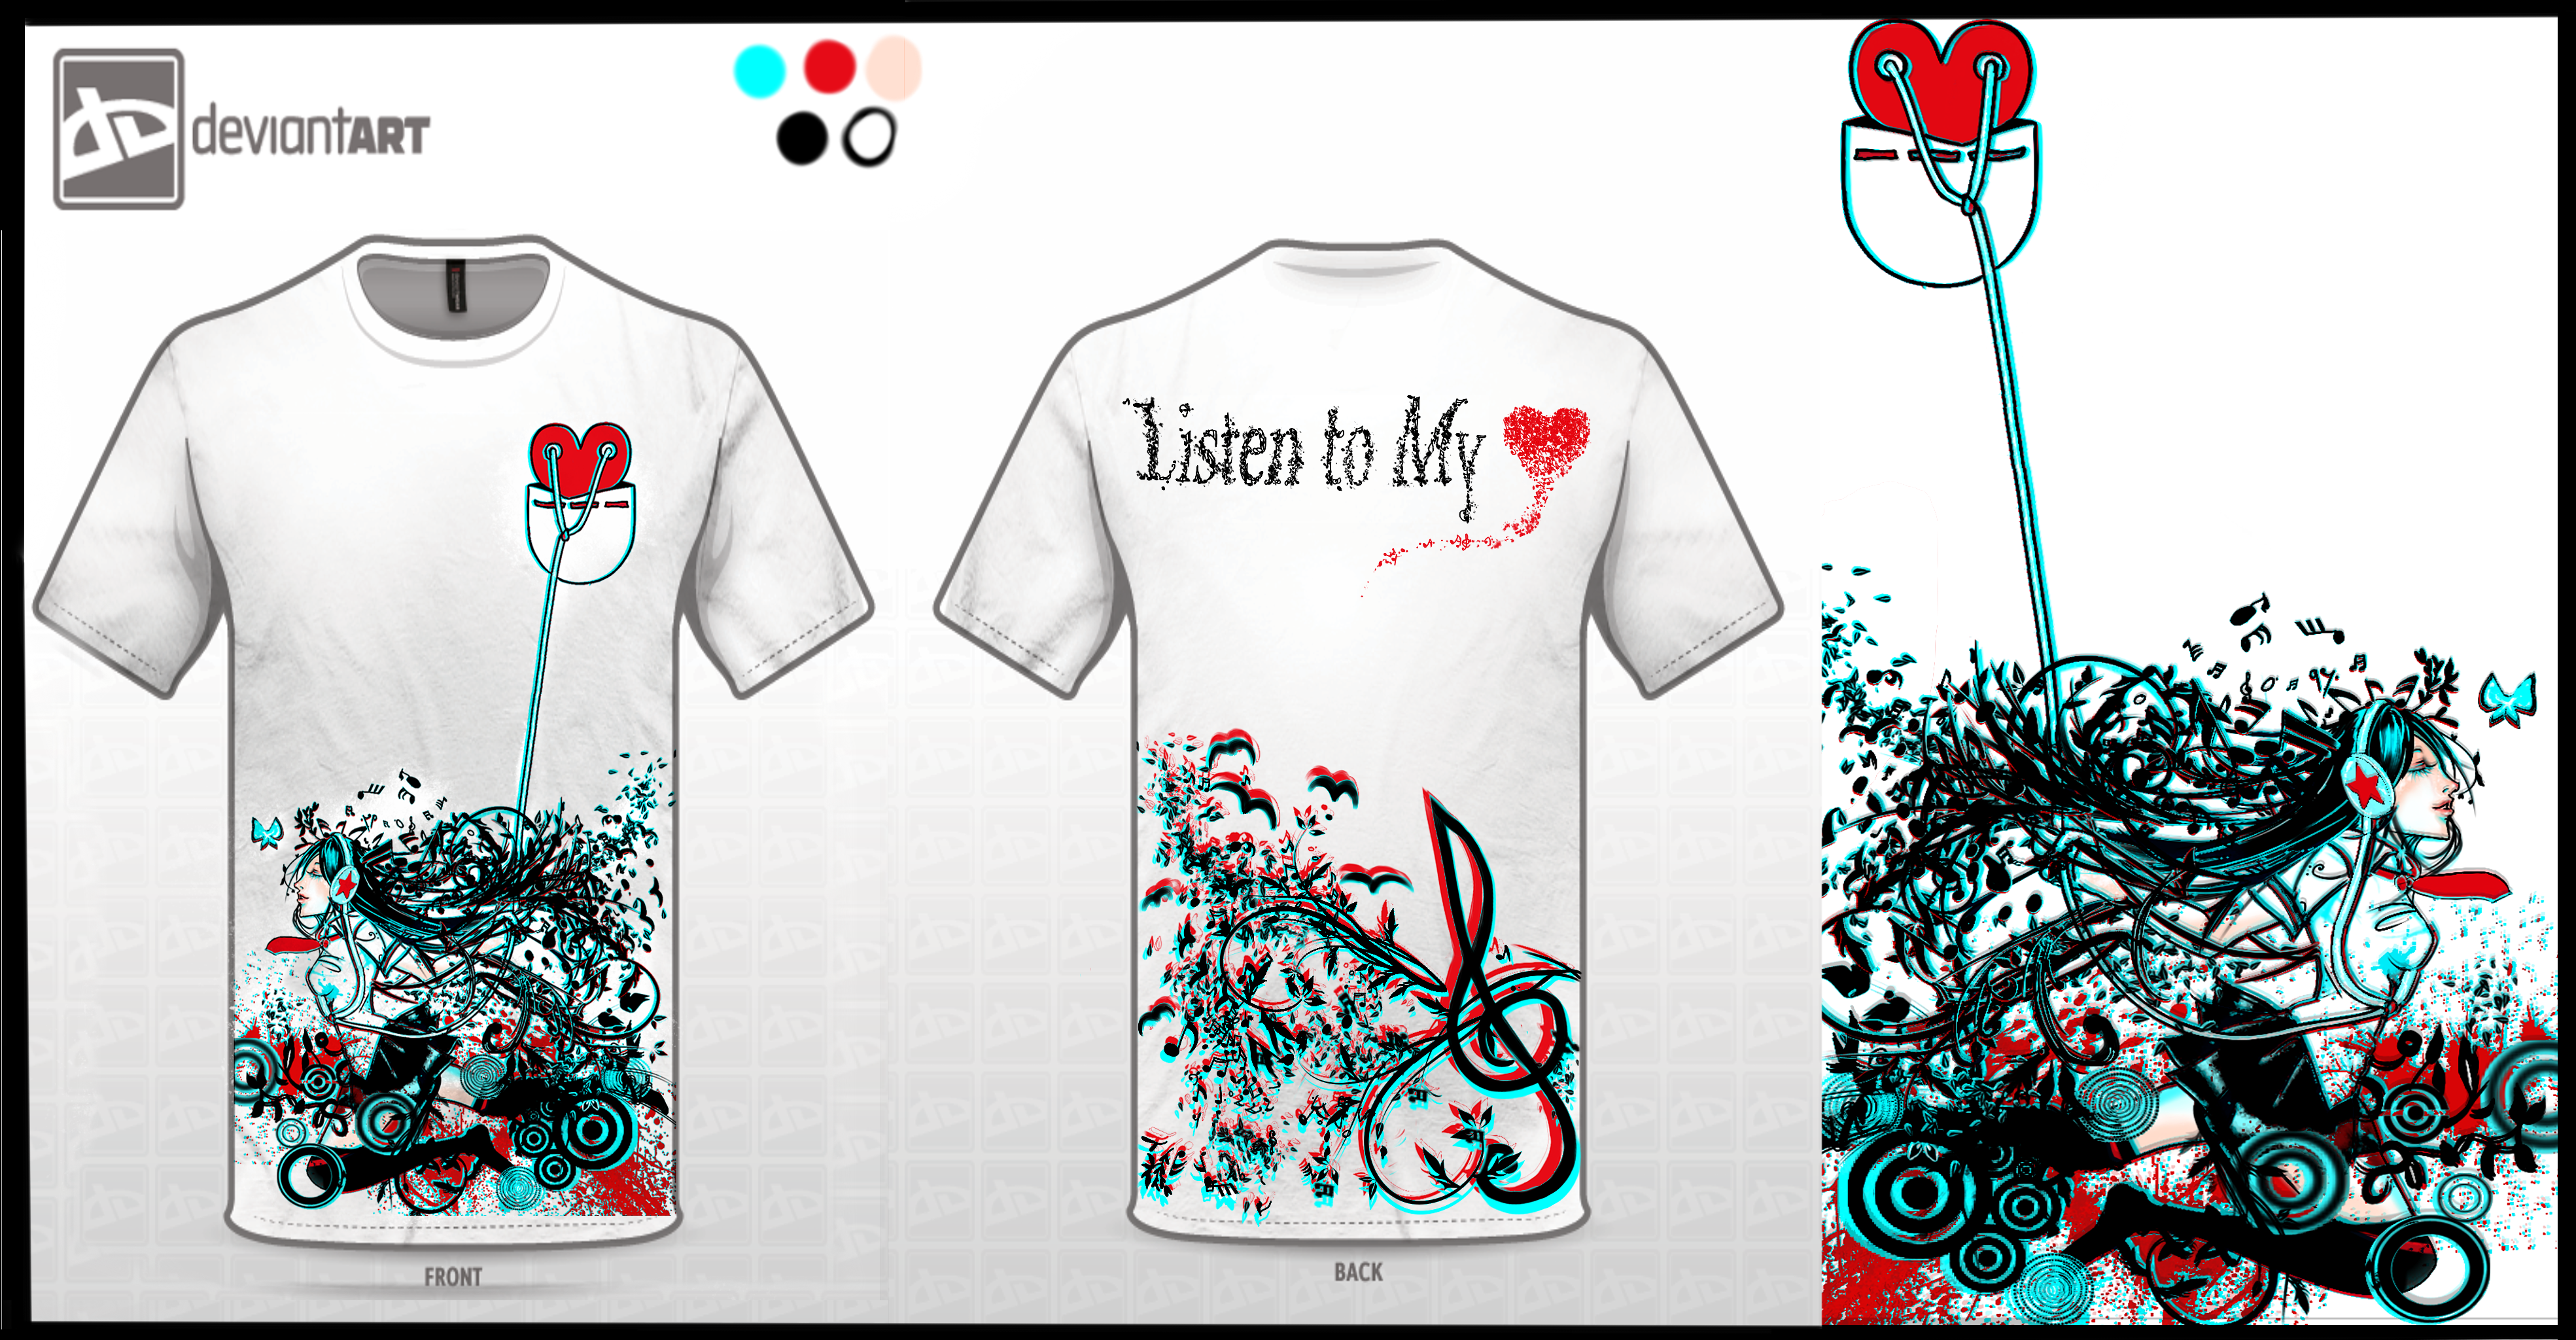 Heart design t shirt -  Listen To My Heart T Shirt Design By Sangrde